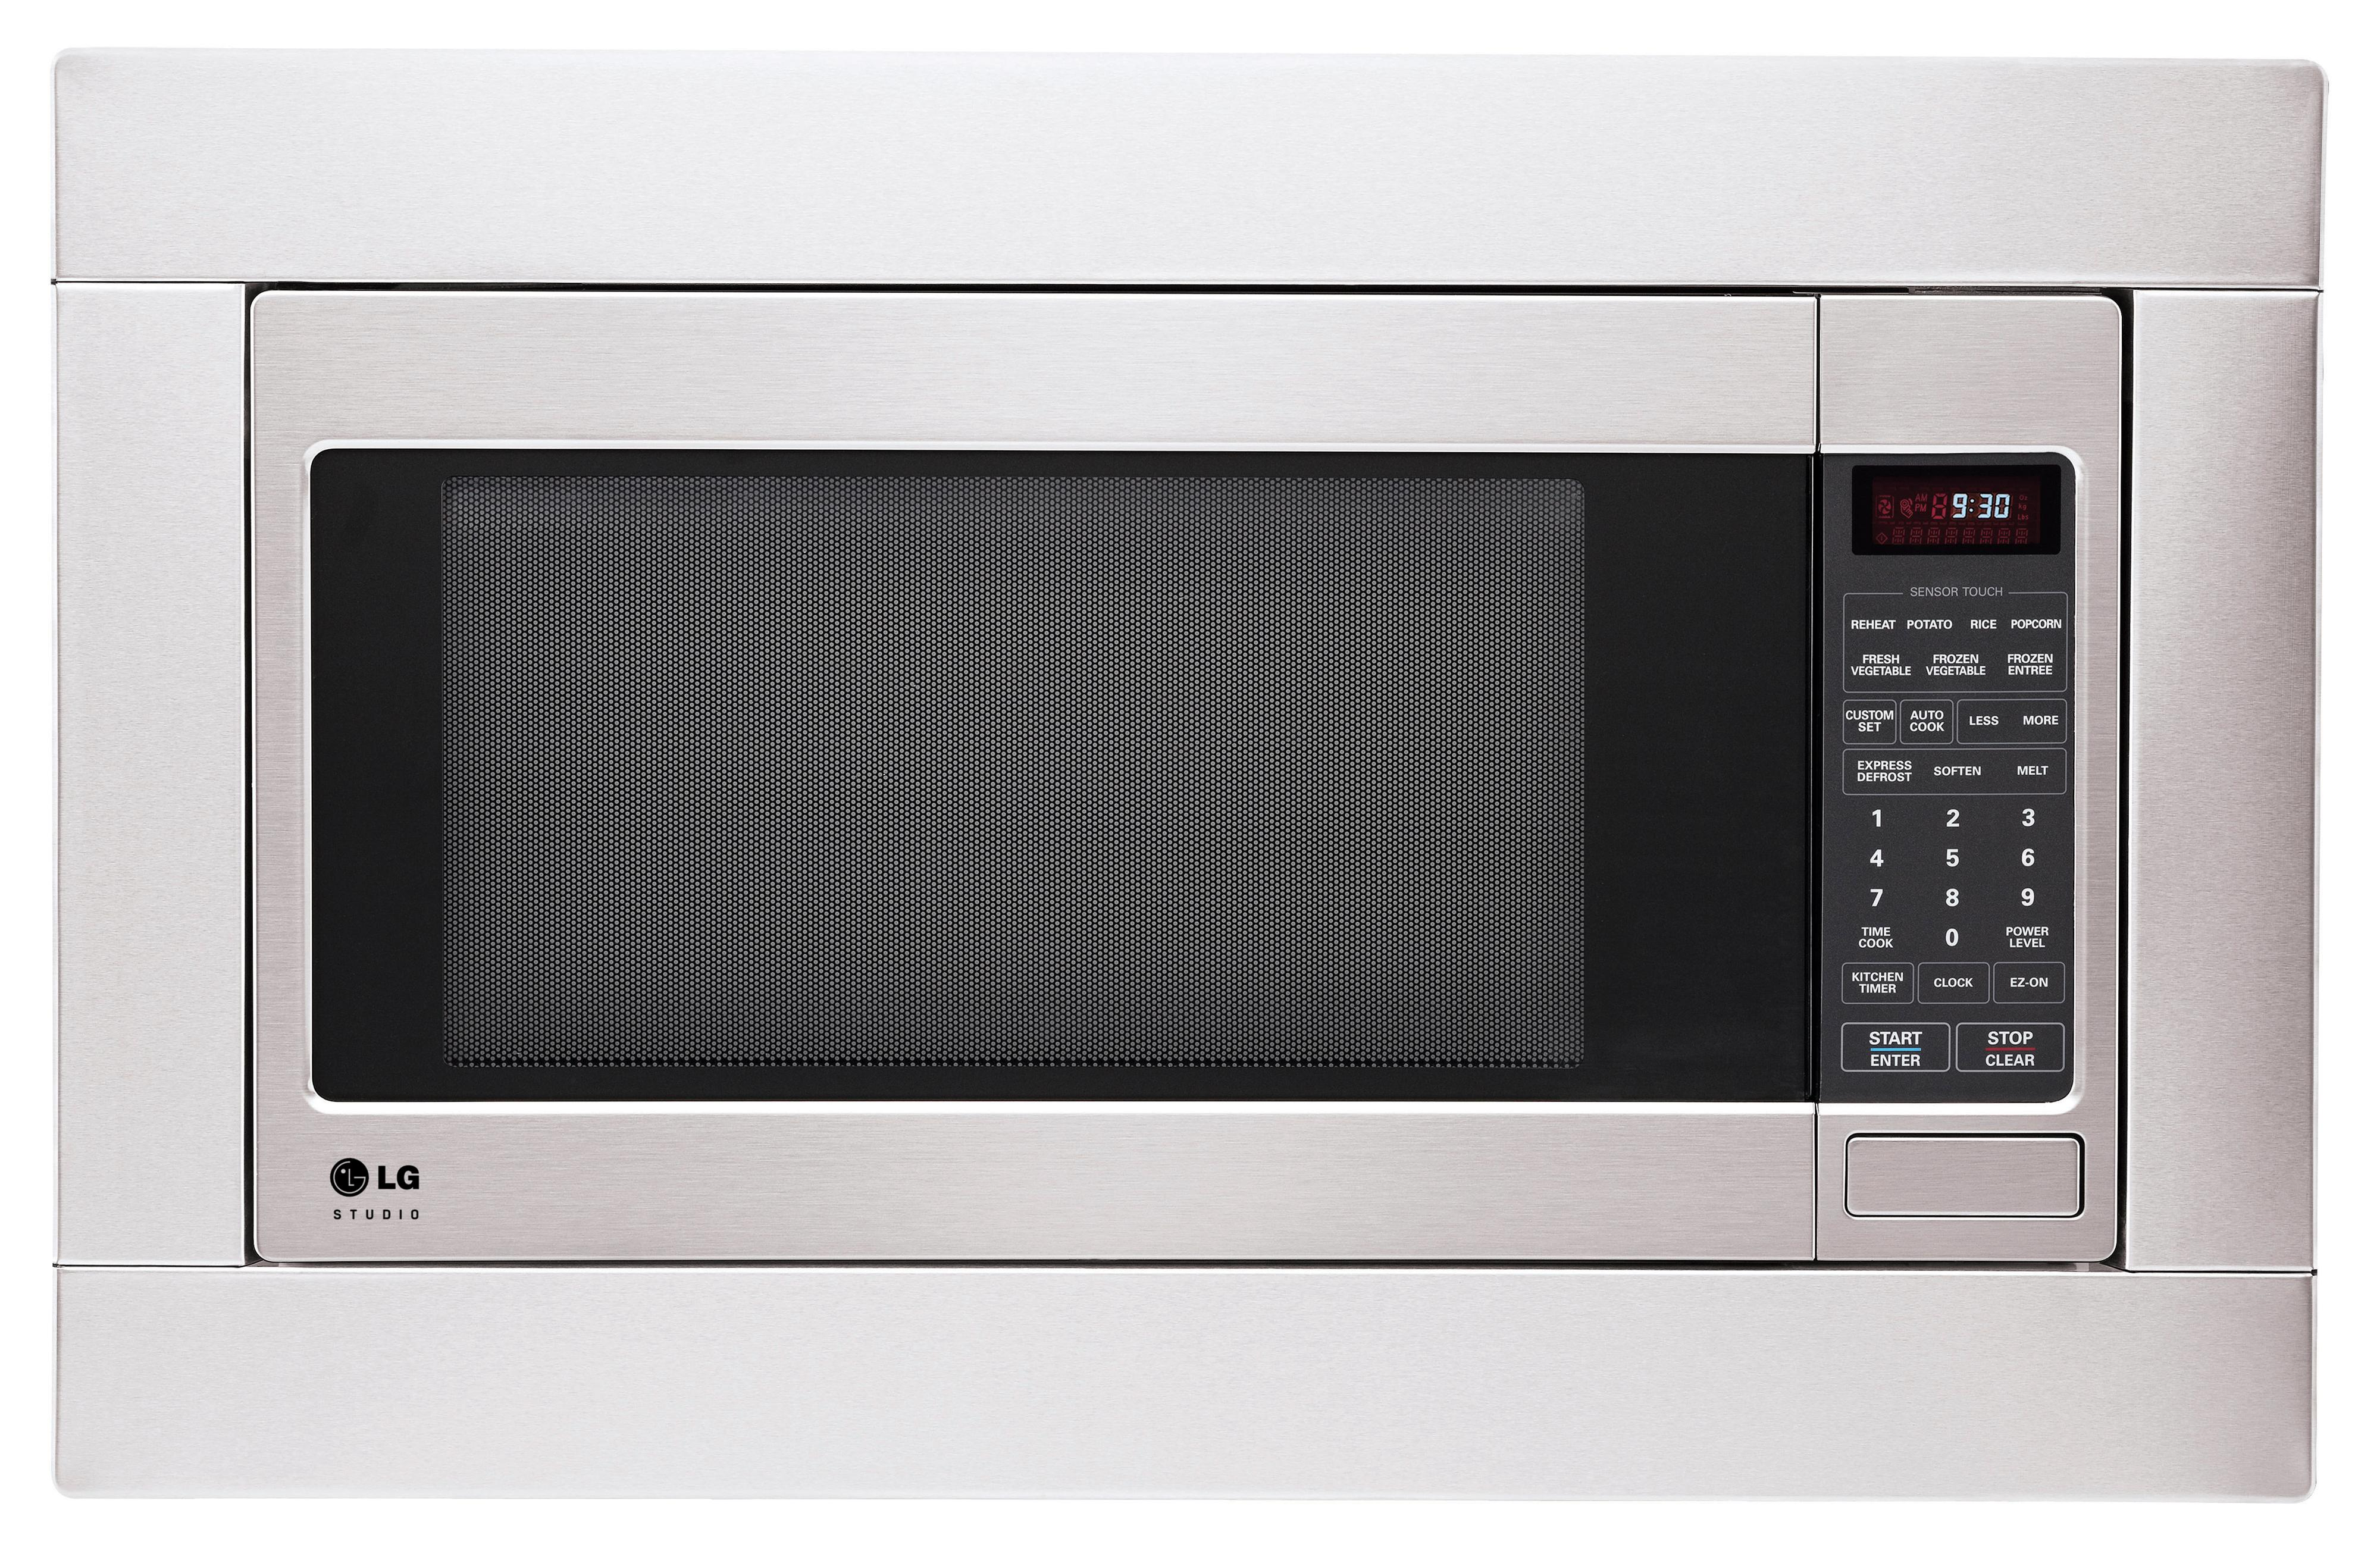 Lg appliances trim kit for lcrt2010st and lg studio for Microwave ovens built in with trim kit